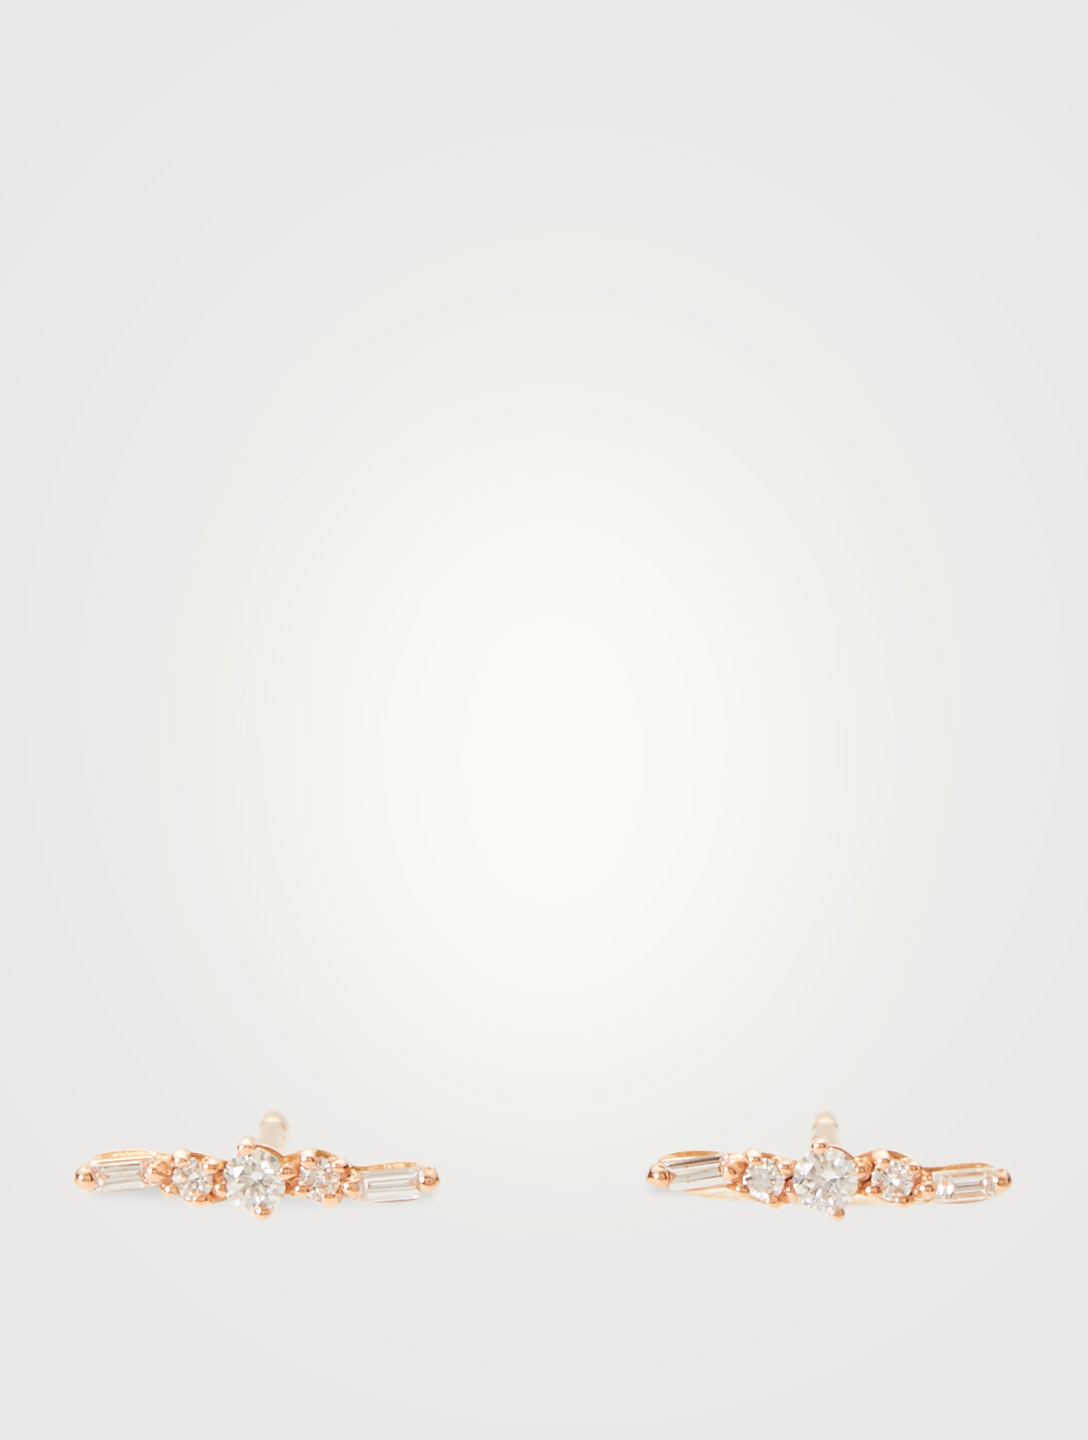 SUZANNE KALAN Fireworks 18K Rose Gold Earrings With Diamonds Women's Metallic